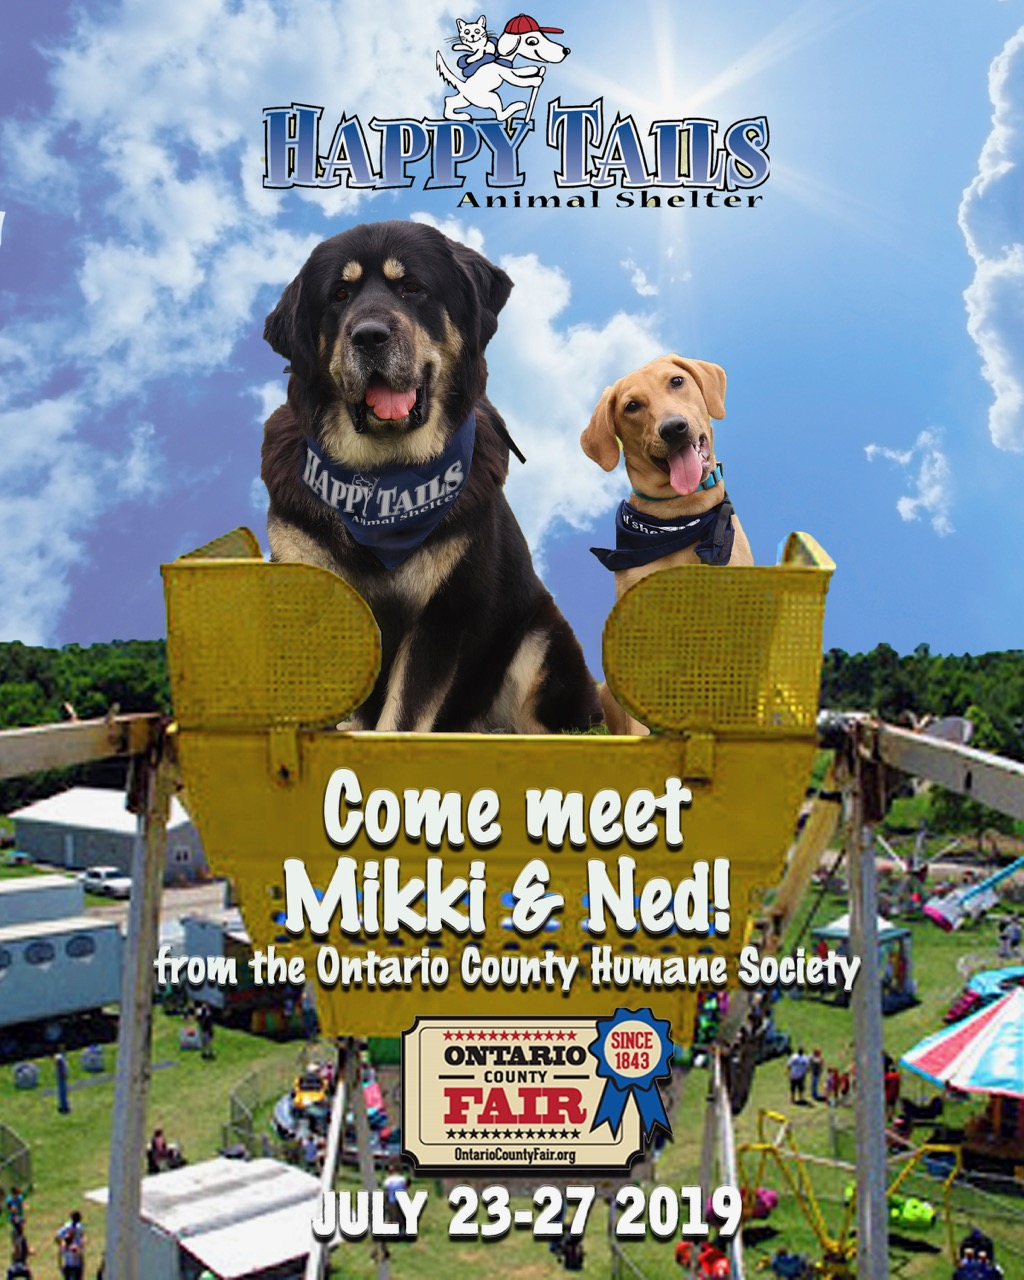 Come meet Nikki and Ned at the Ontario County Fair.